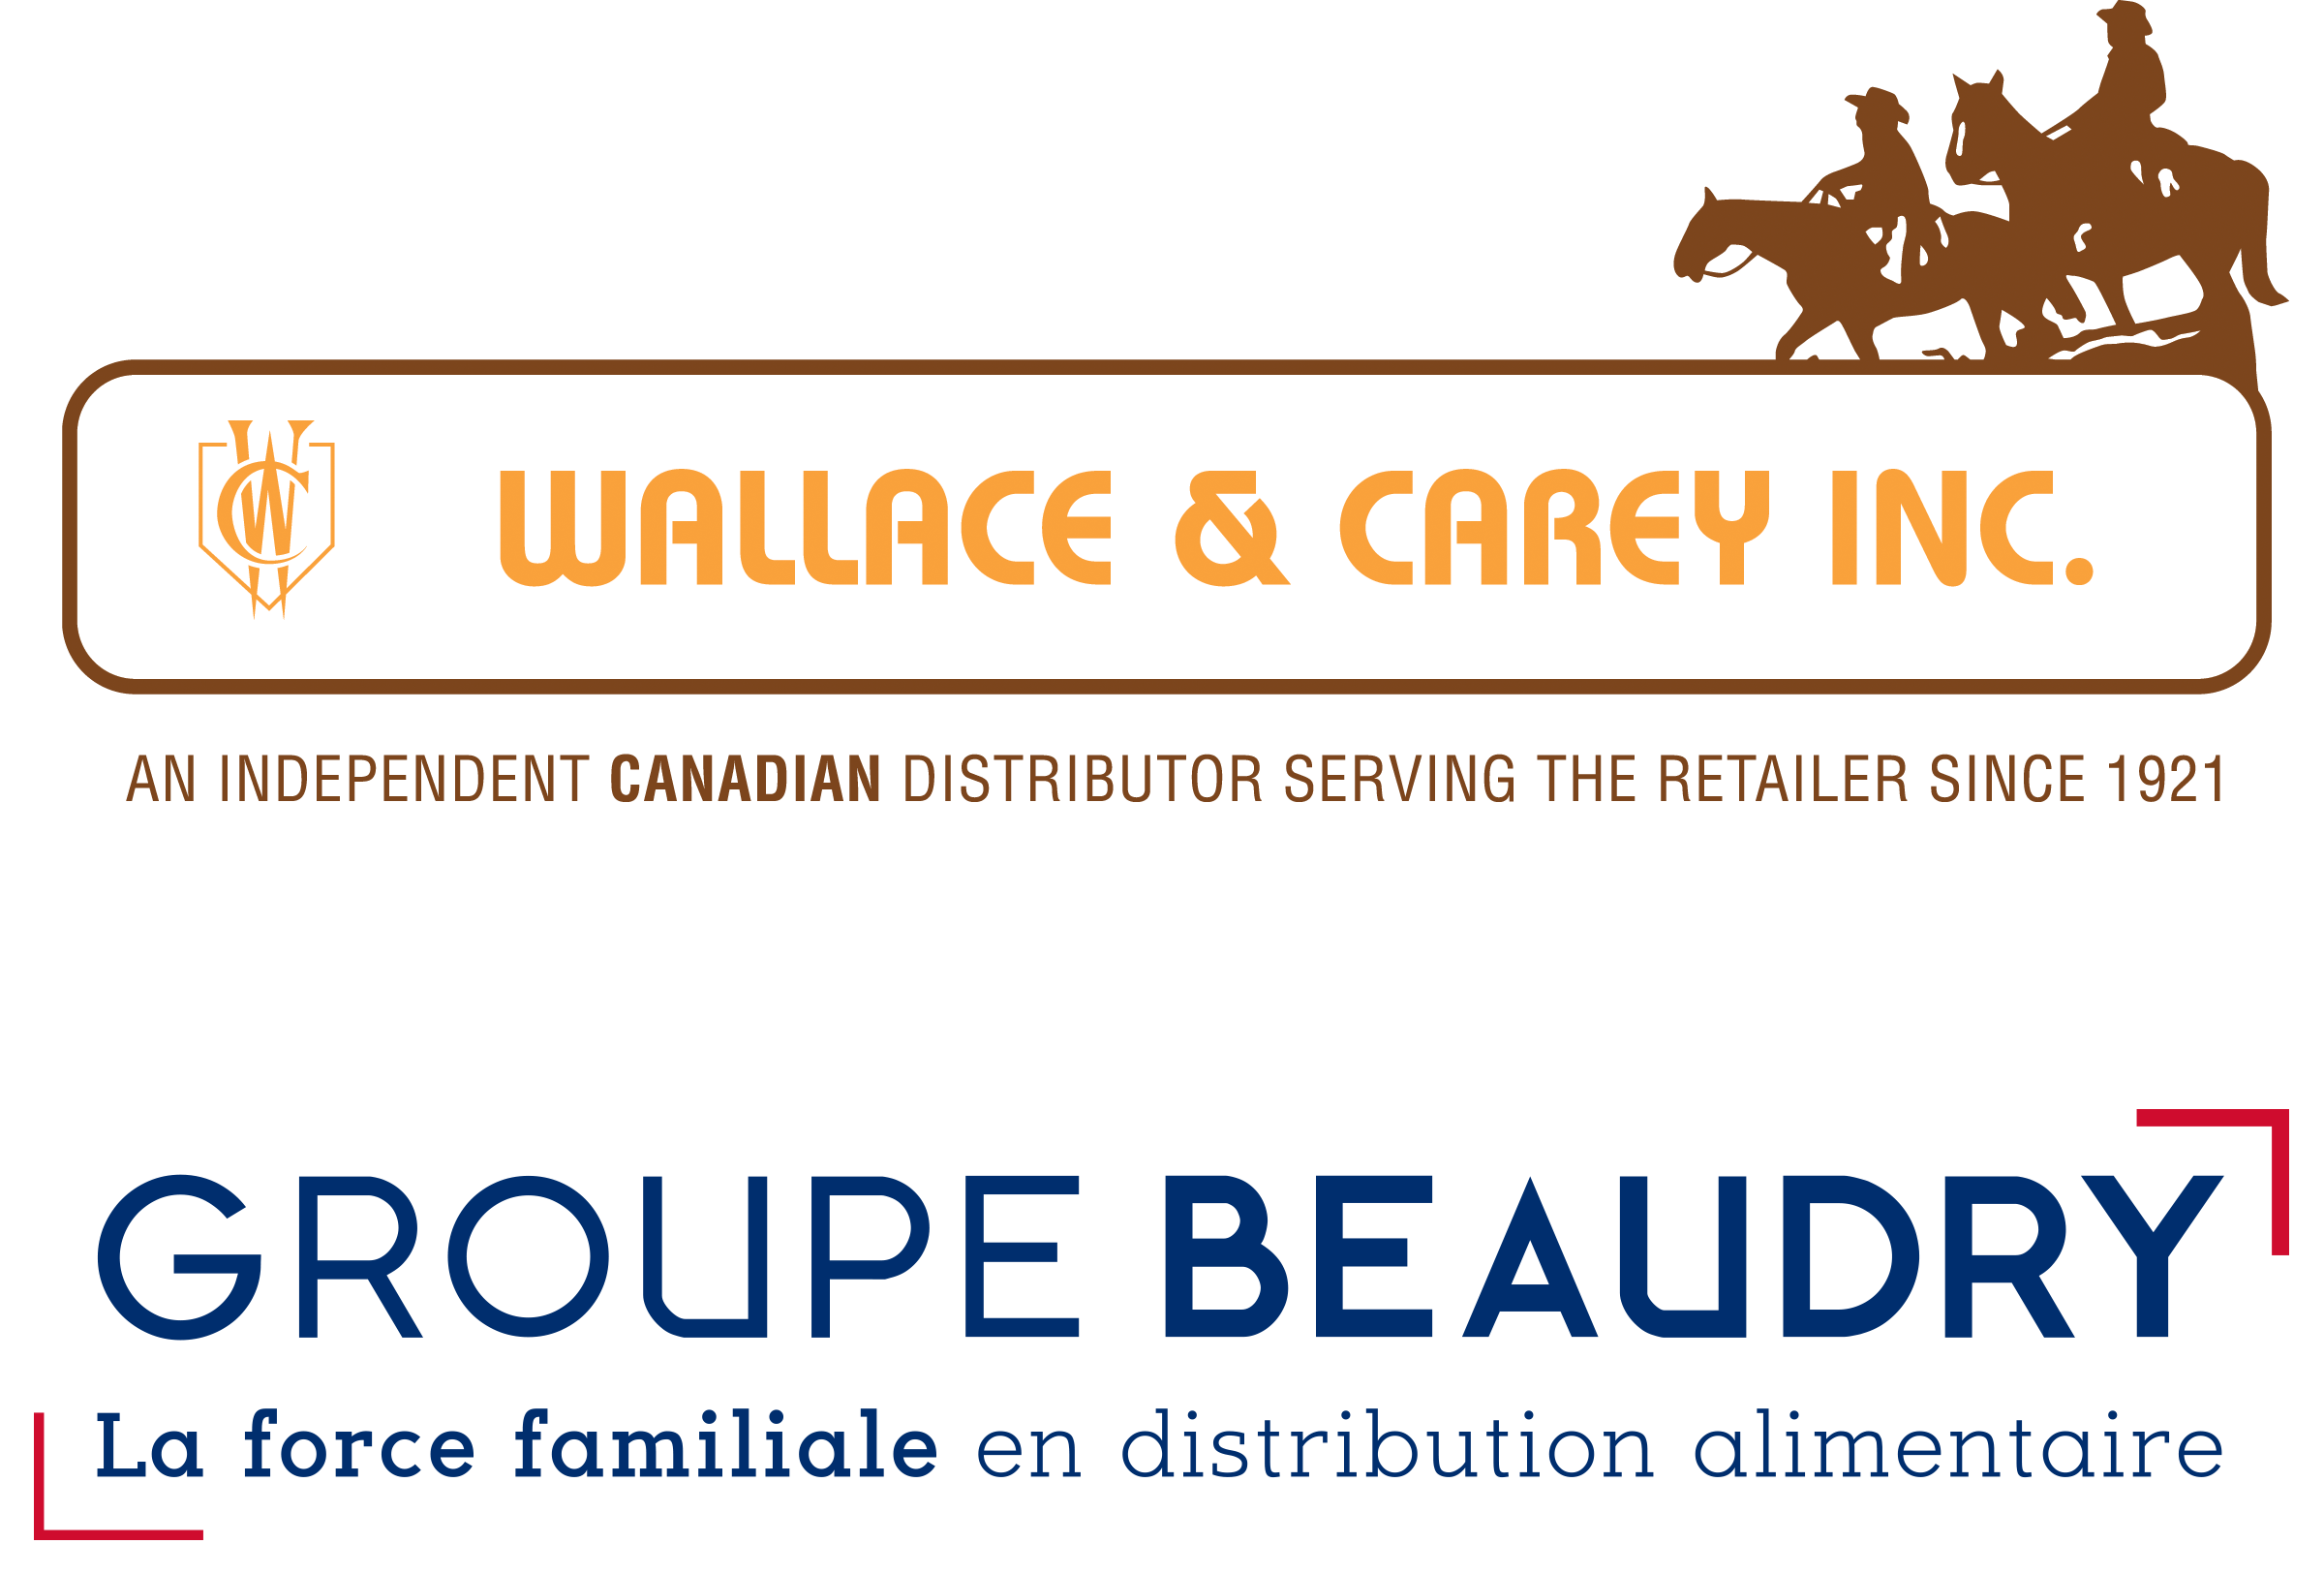 Wallace & Carey / Groupe Beaudry